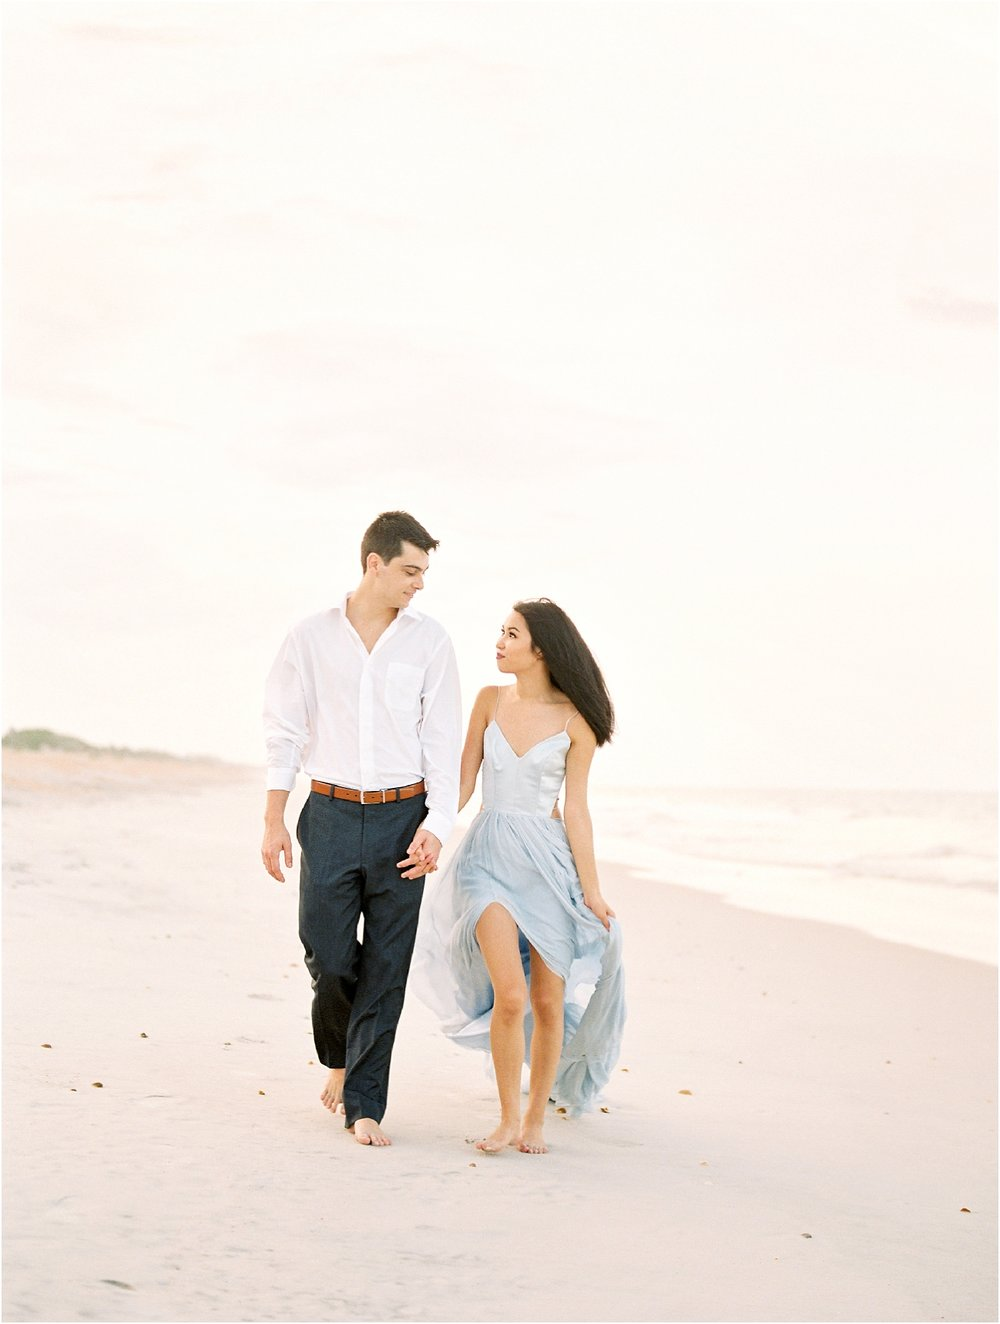 Lisa Silva Photography- Ponte Vedra Beach, St. Augustine and Jacksonville, Florida Fine Art Film Wedding Photography- Sunset Engagement Session at  Guana Beach State Park_0002.jpg